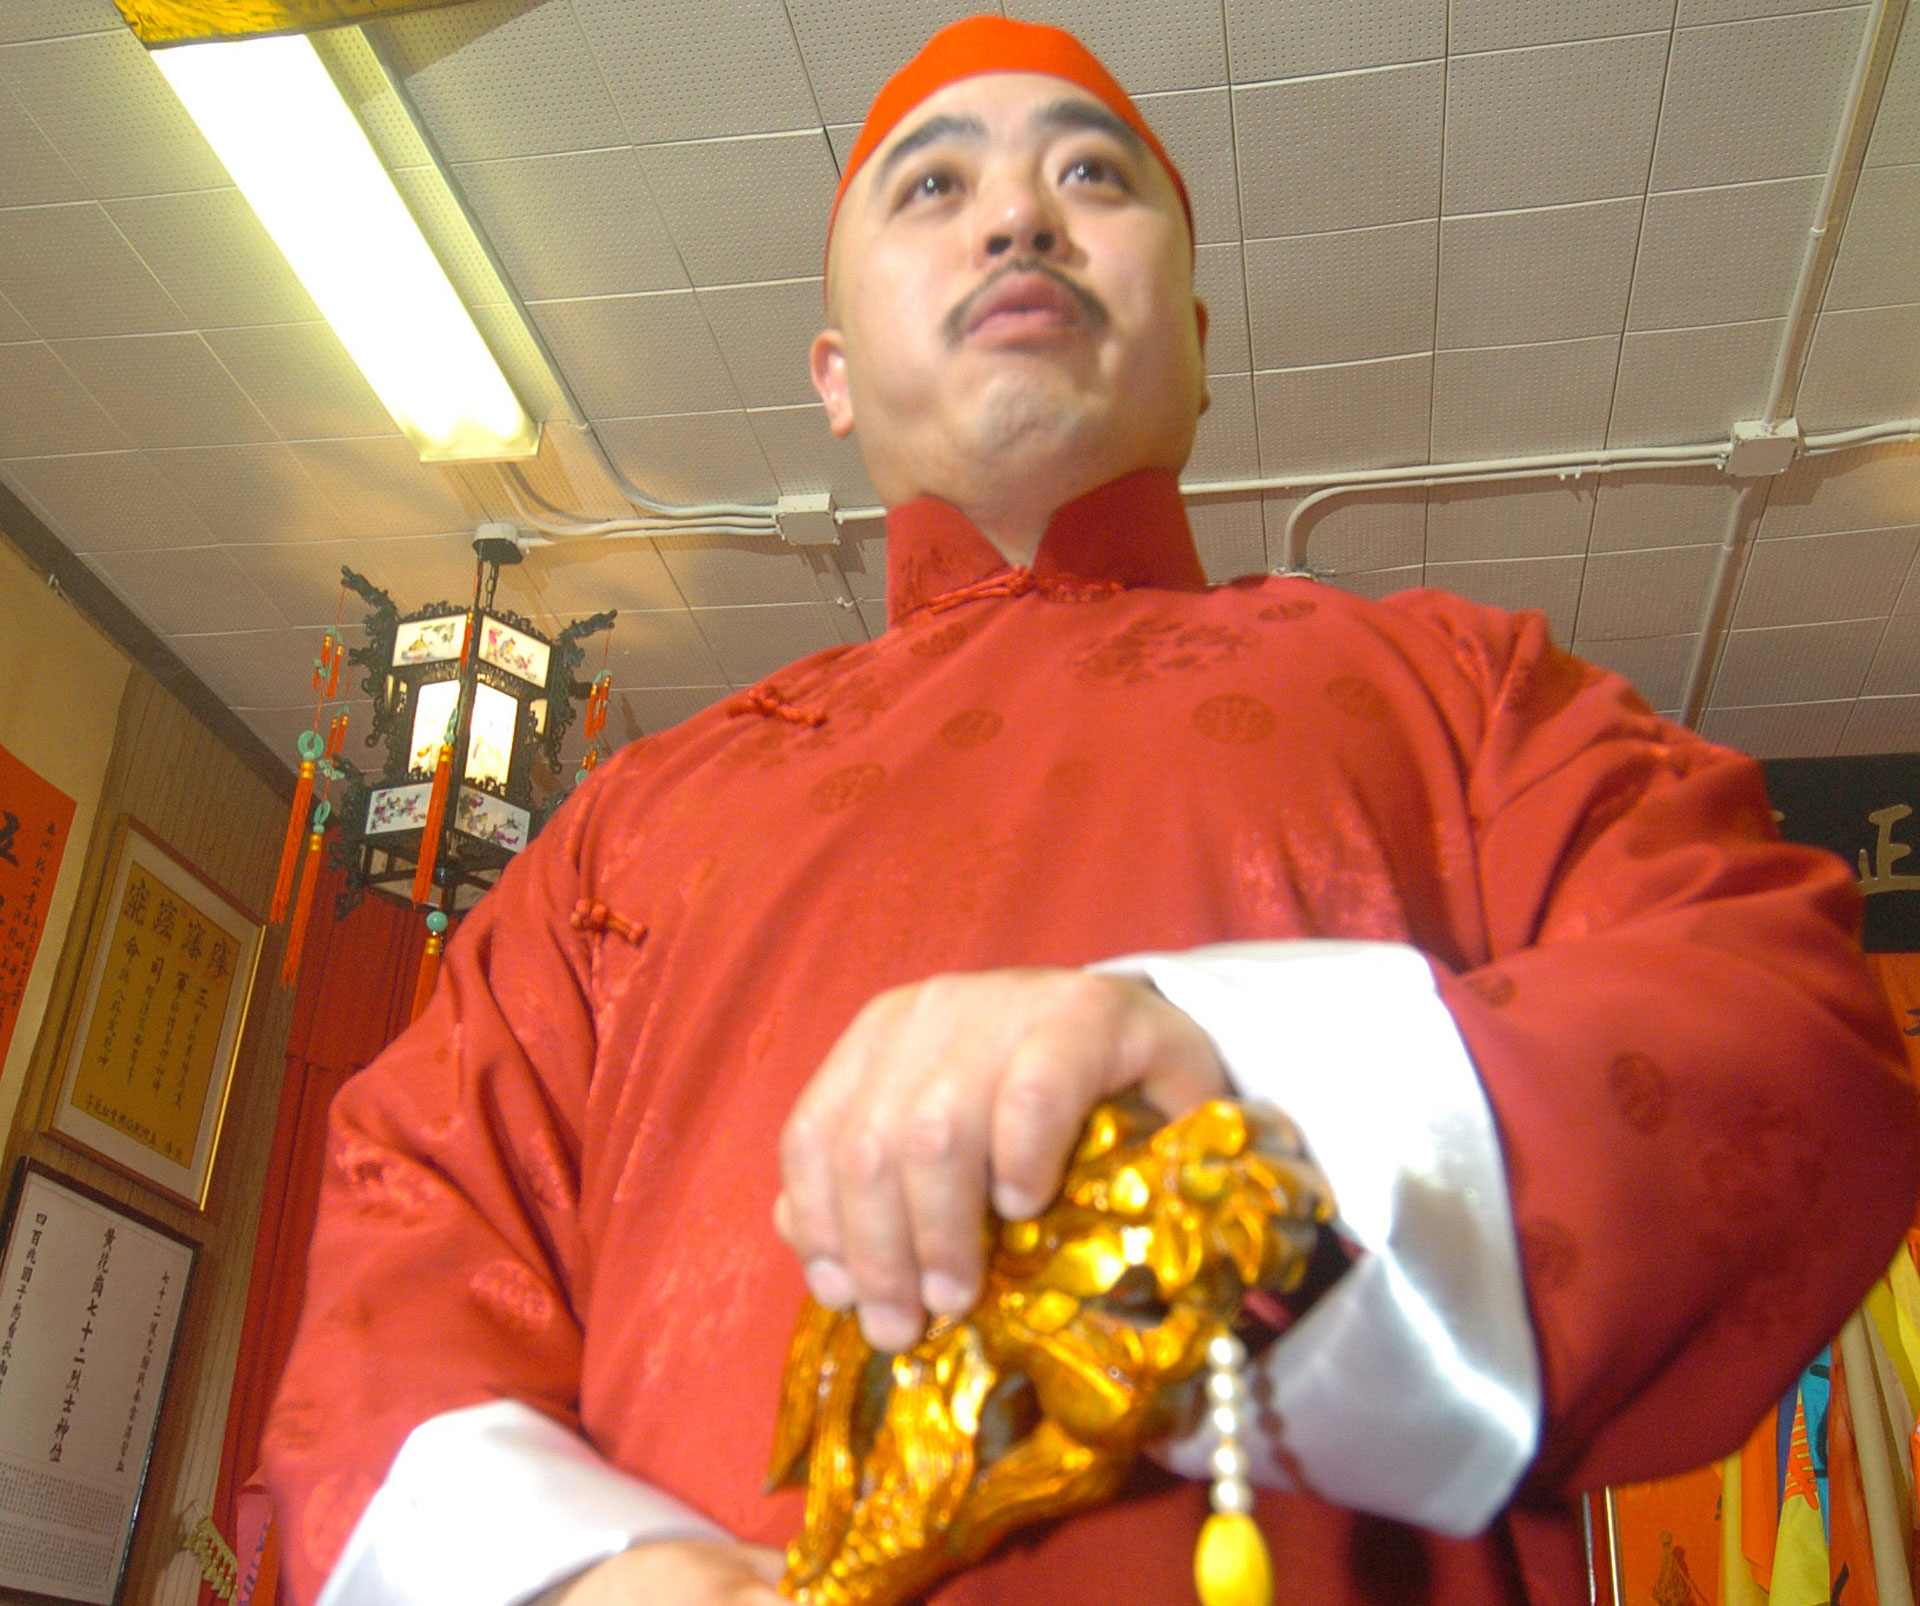 """In this photo taken Aug. 6, 2006, Raymond """"Shrimp Boy"""" Chow is shown after being sworn in as the """"Dragon Head"""" of the Chee Kung Tong in Chinatown in San Francisco."""